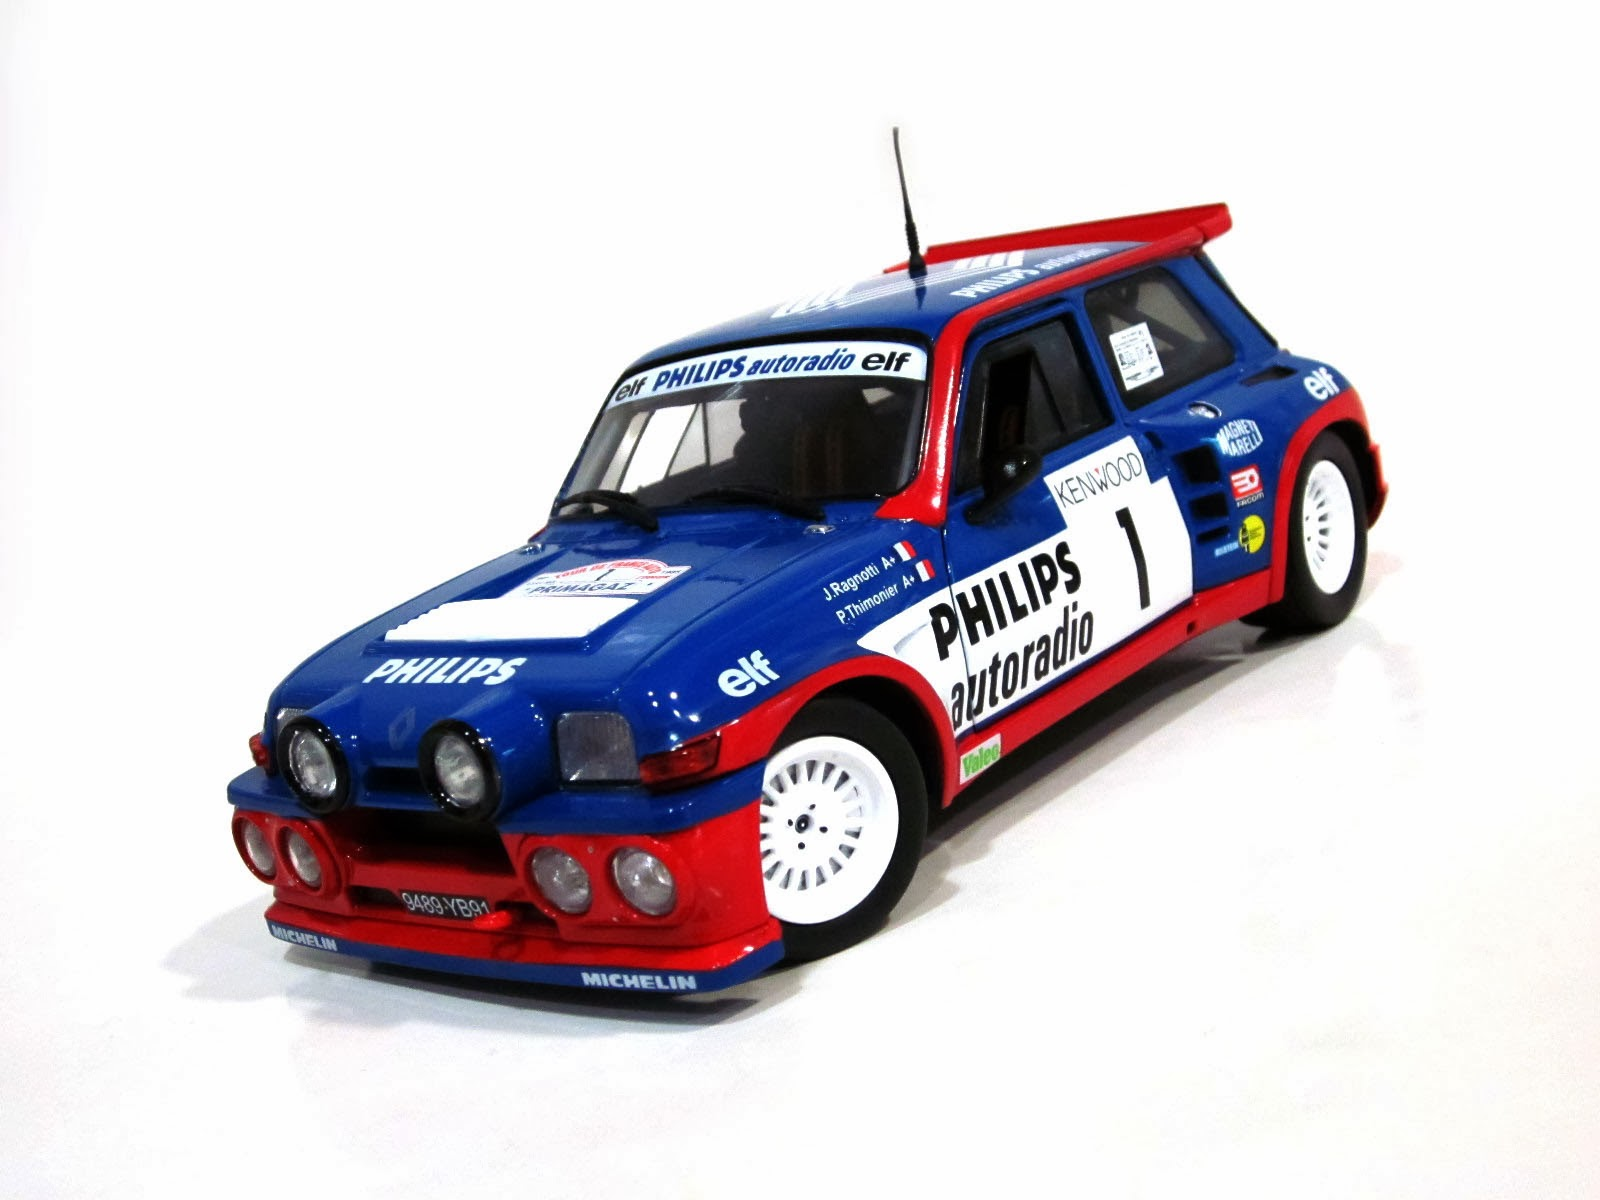 Renault 5 Maxi Turbo '85 - Solido